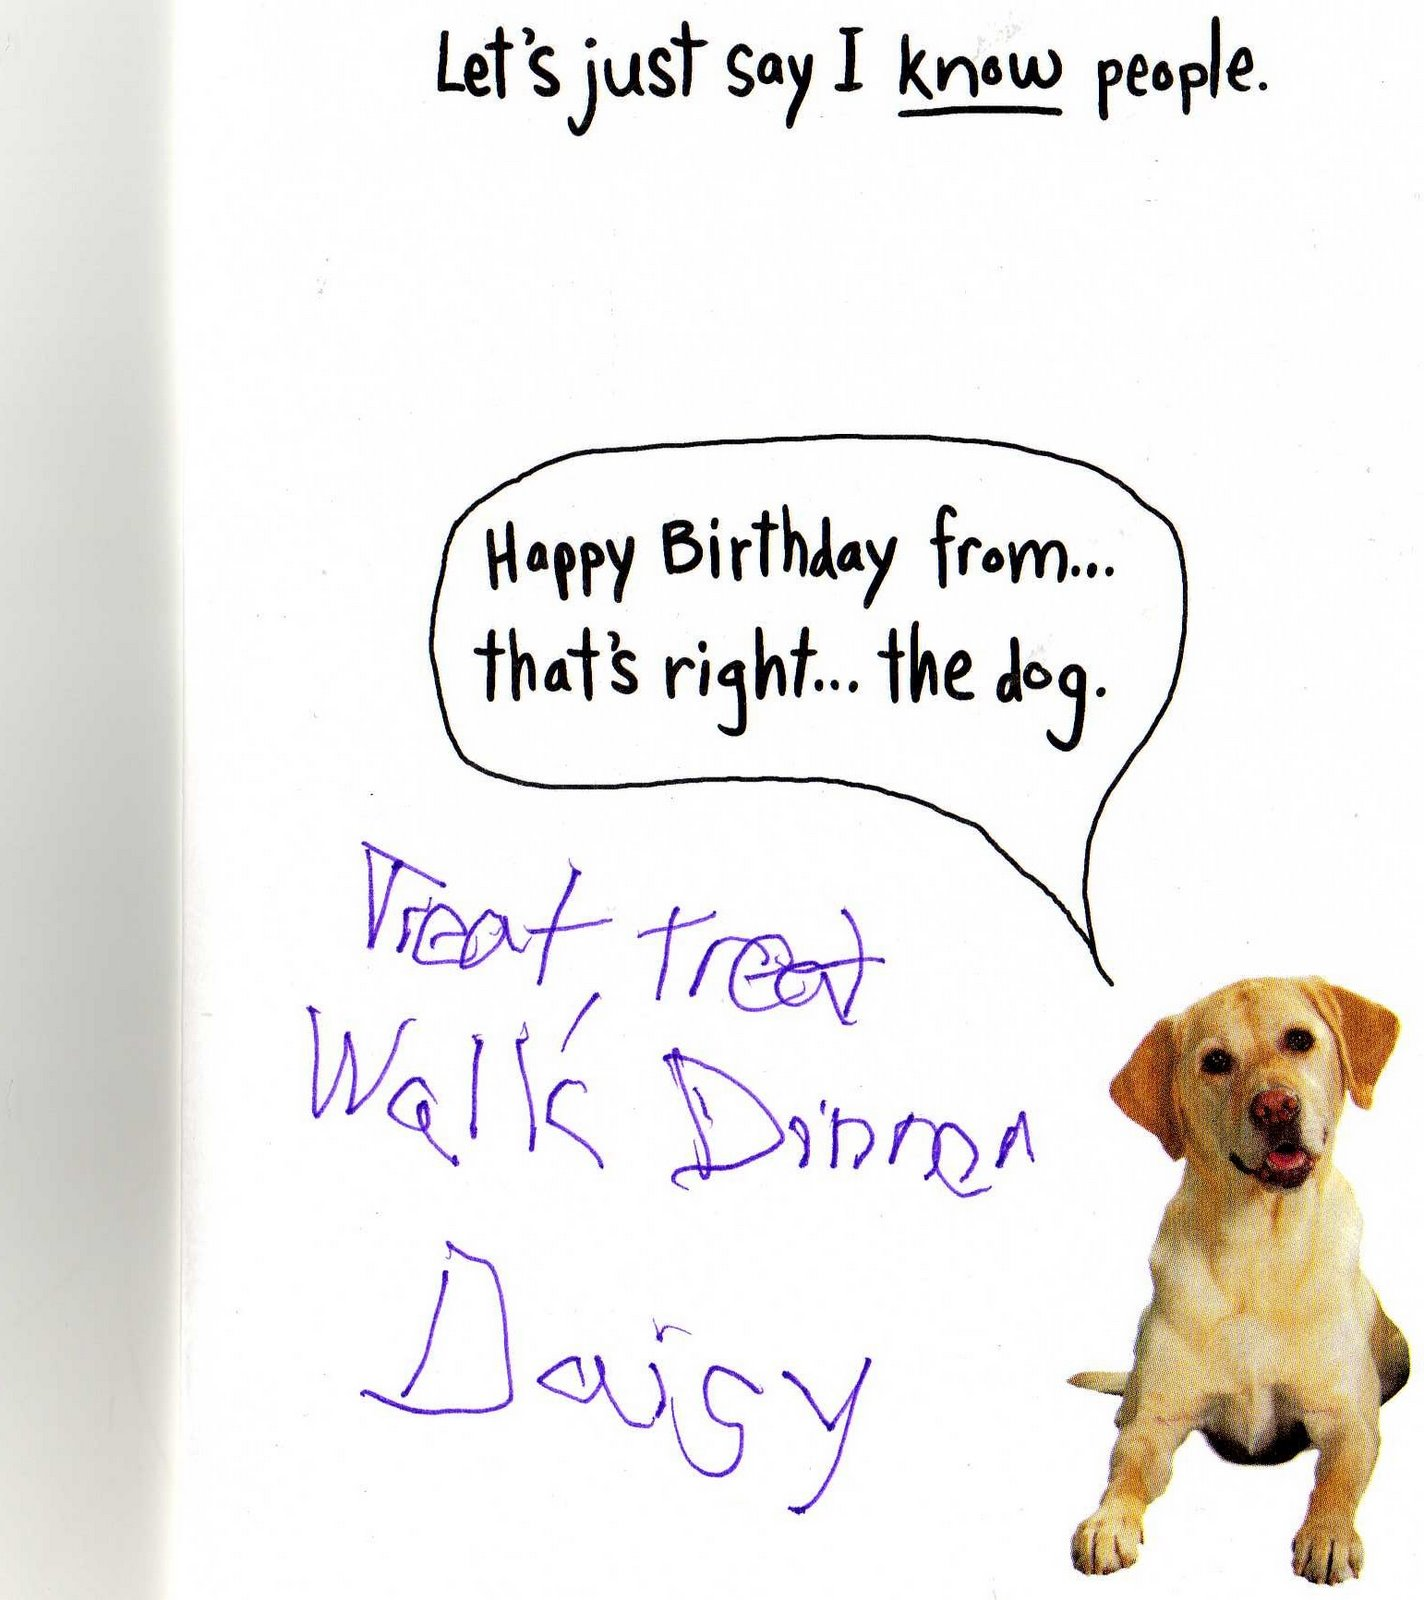 Awesome happy belated birthday cards pics eccleshallfc belated happy birthday dog kristyandbryce Choice Image